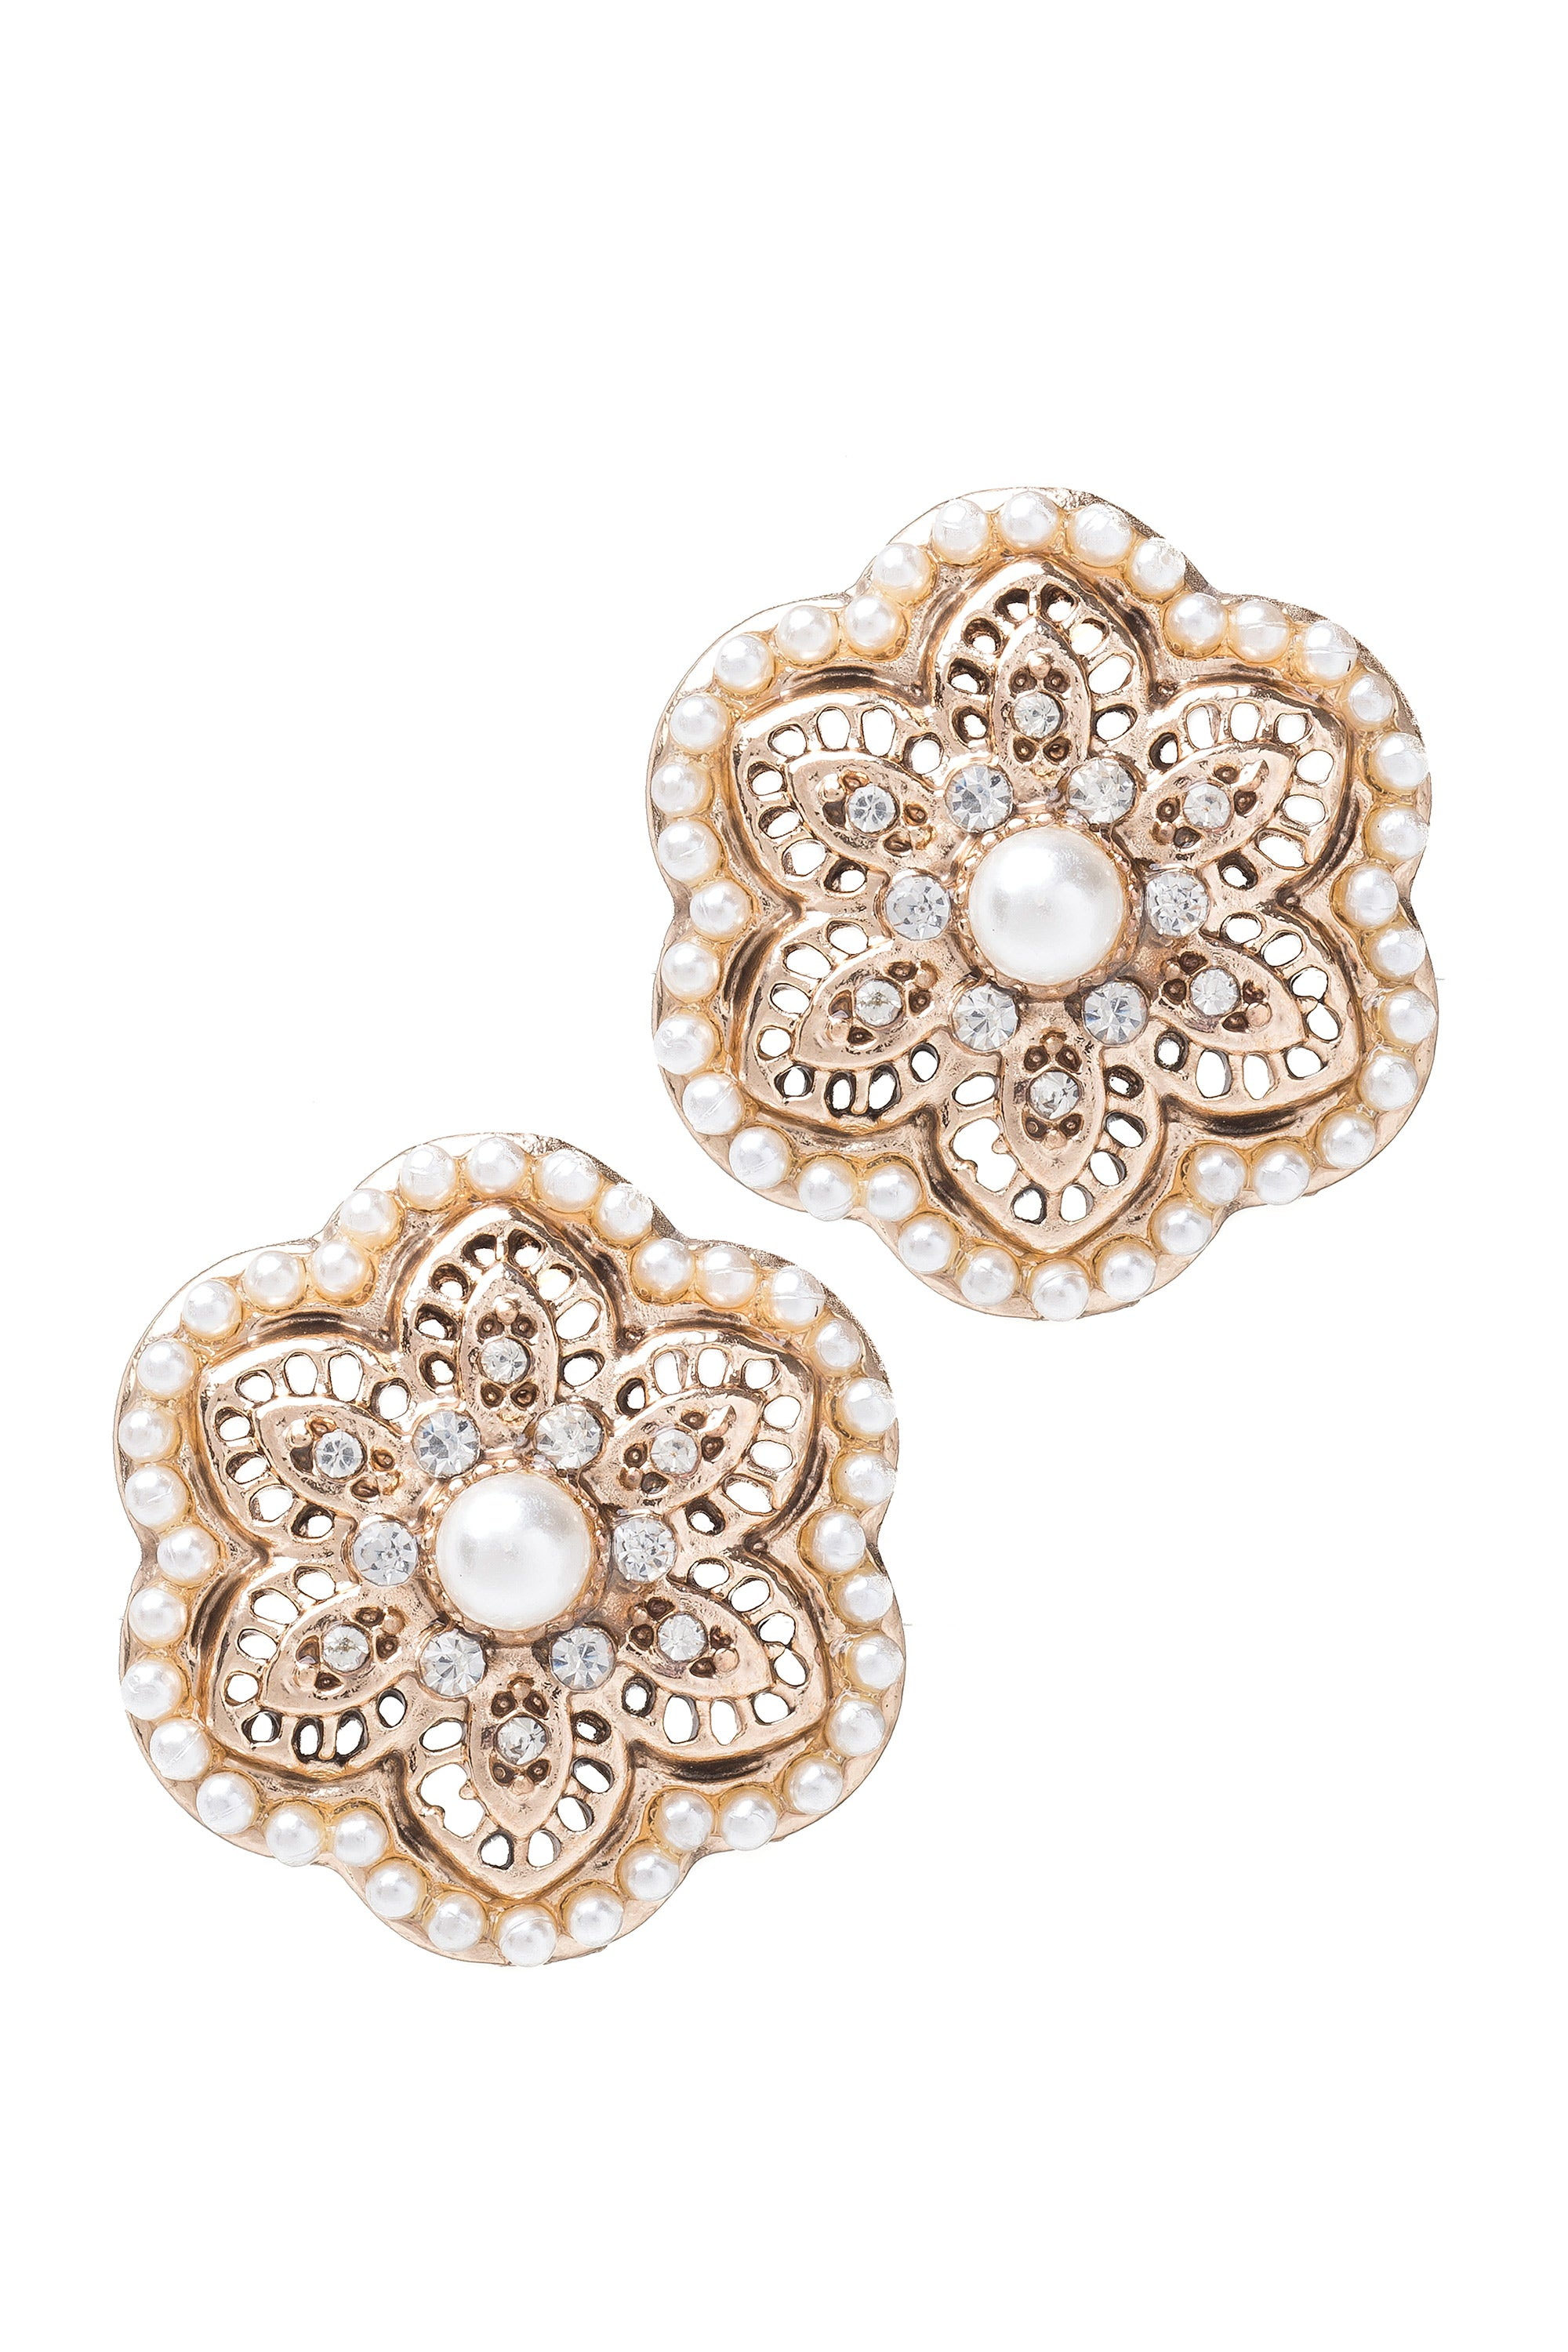 Type 1 Daffodil Doily Earrings